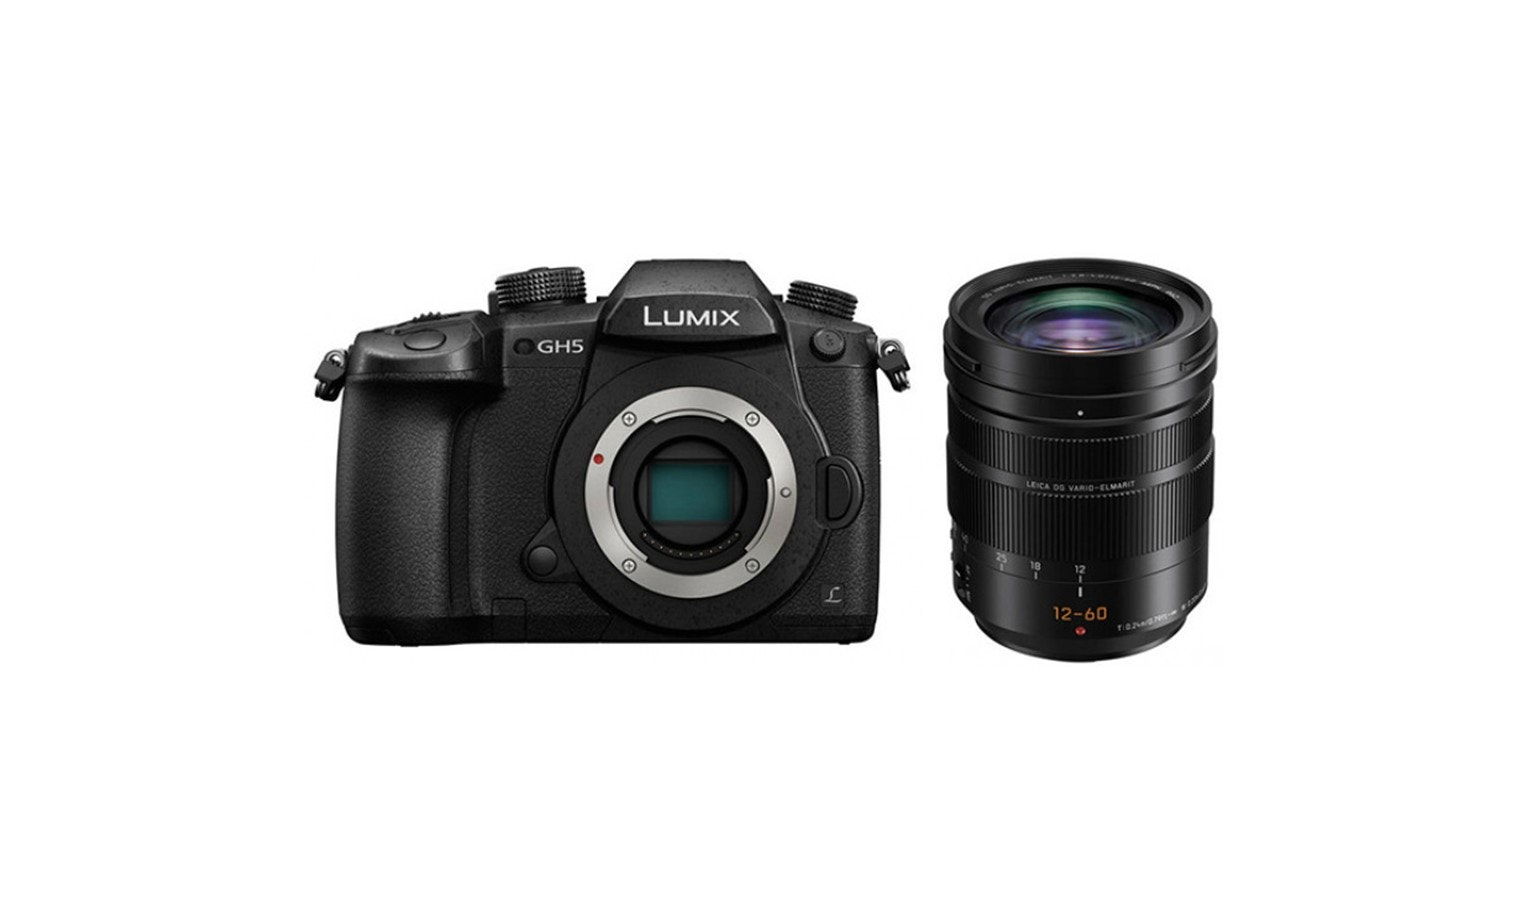 Panasonic Lumix GH5AGA-K Digital Mirrorless Camera - Black 02